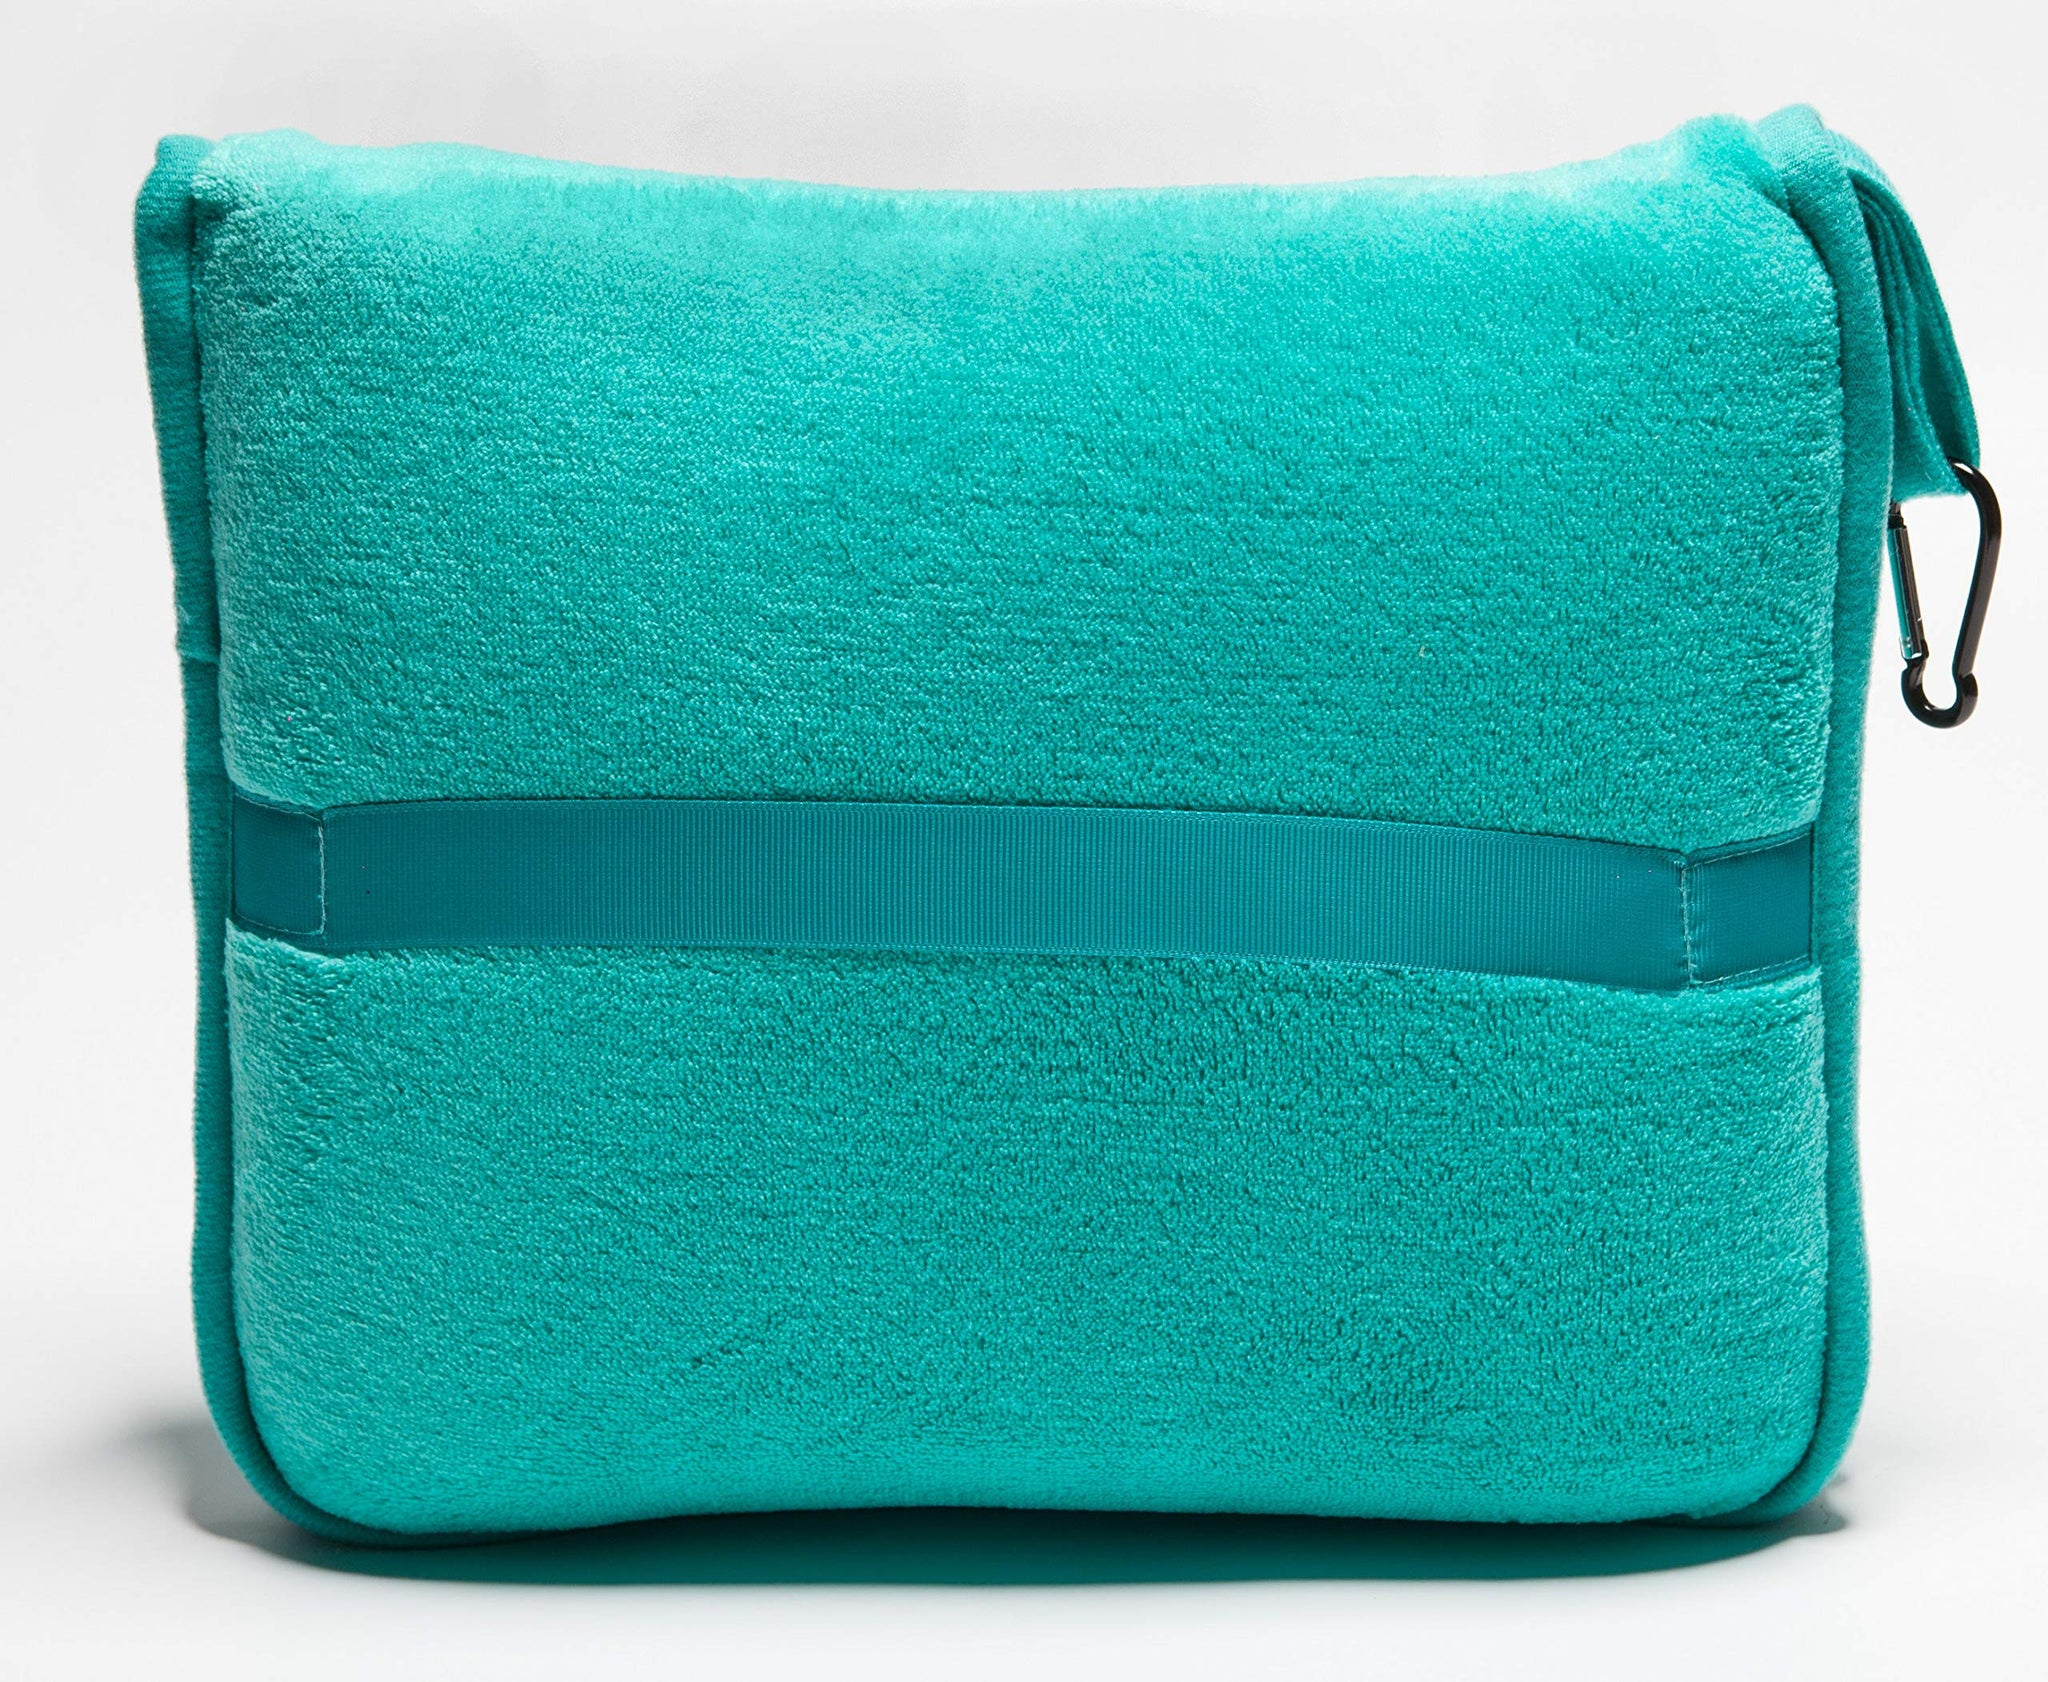 BlueHills Premium Memory Foam Neck Travel Twist Airplane Pillow in Super Soft Velvet Cover & Travel Accessories in Carry case Bag with Hand Luggage Belt and Carabiner Teal Green (NeckPillow-Teal)